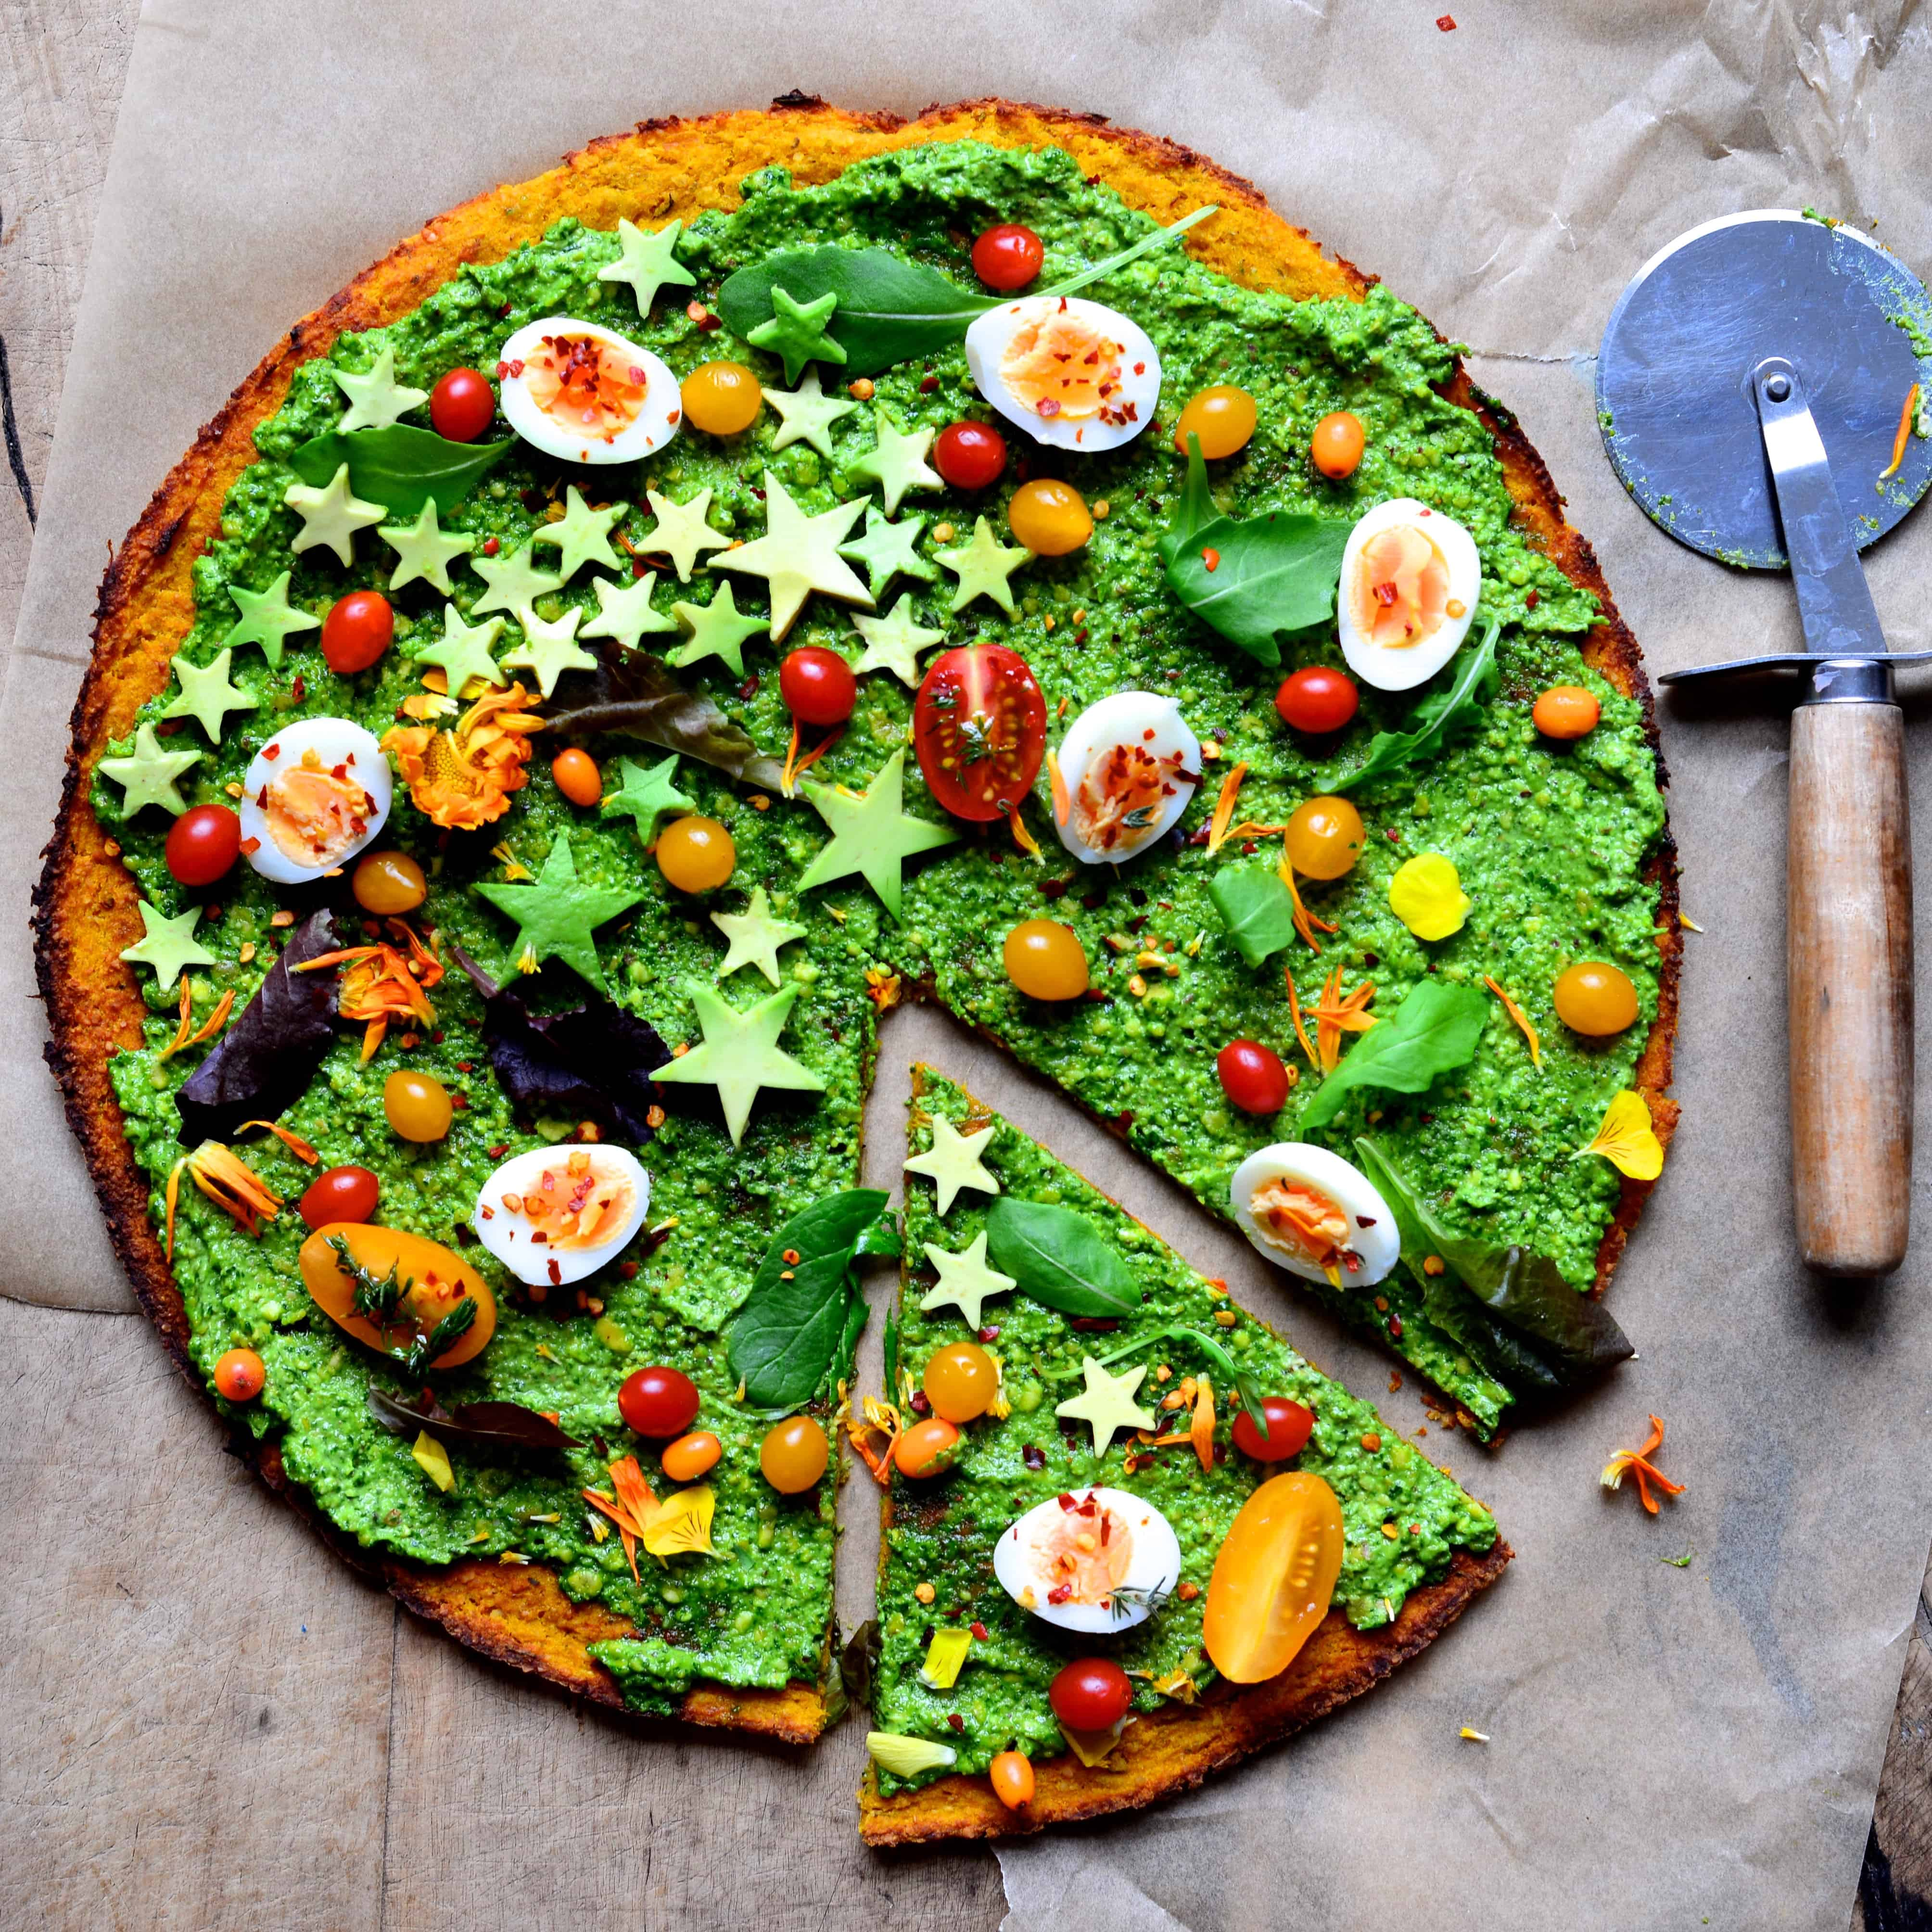 butternut squash and pesto pizza with veggies and quails eggs.